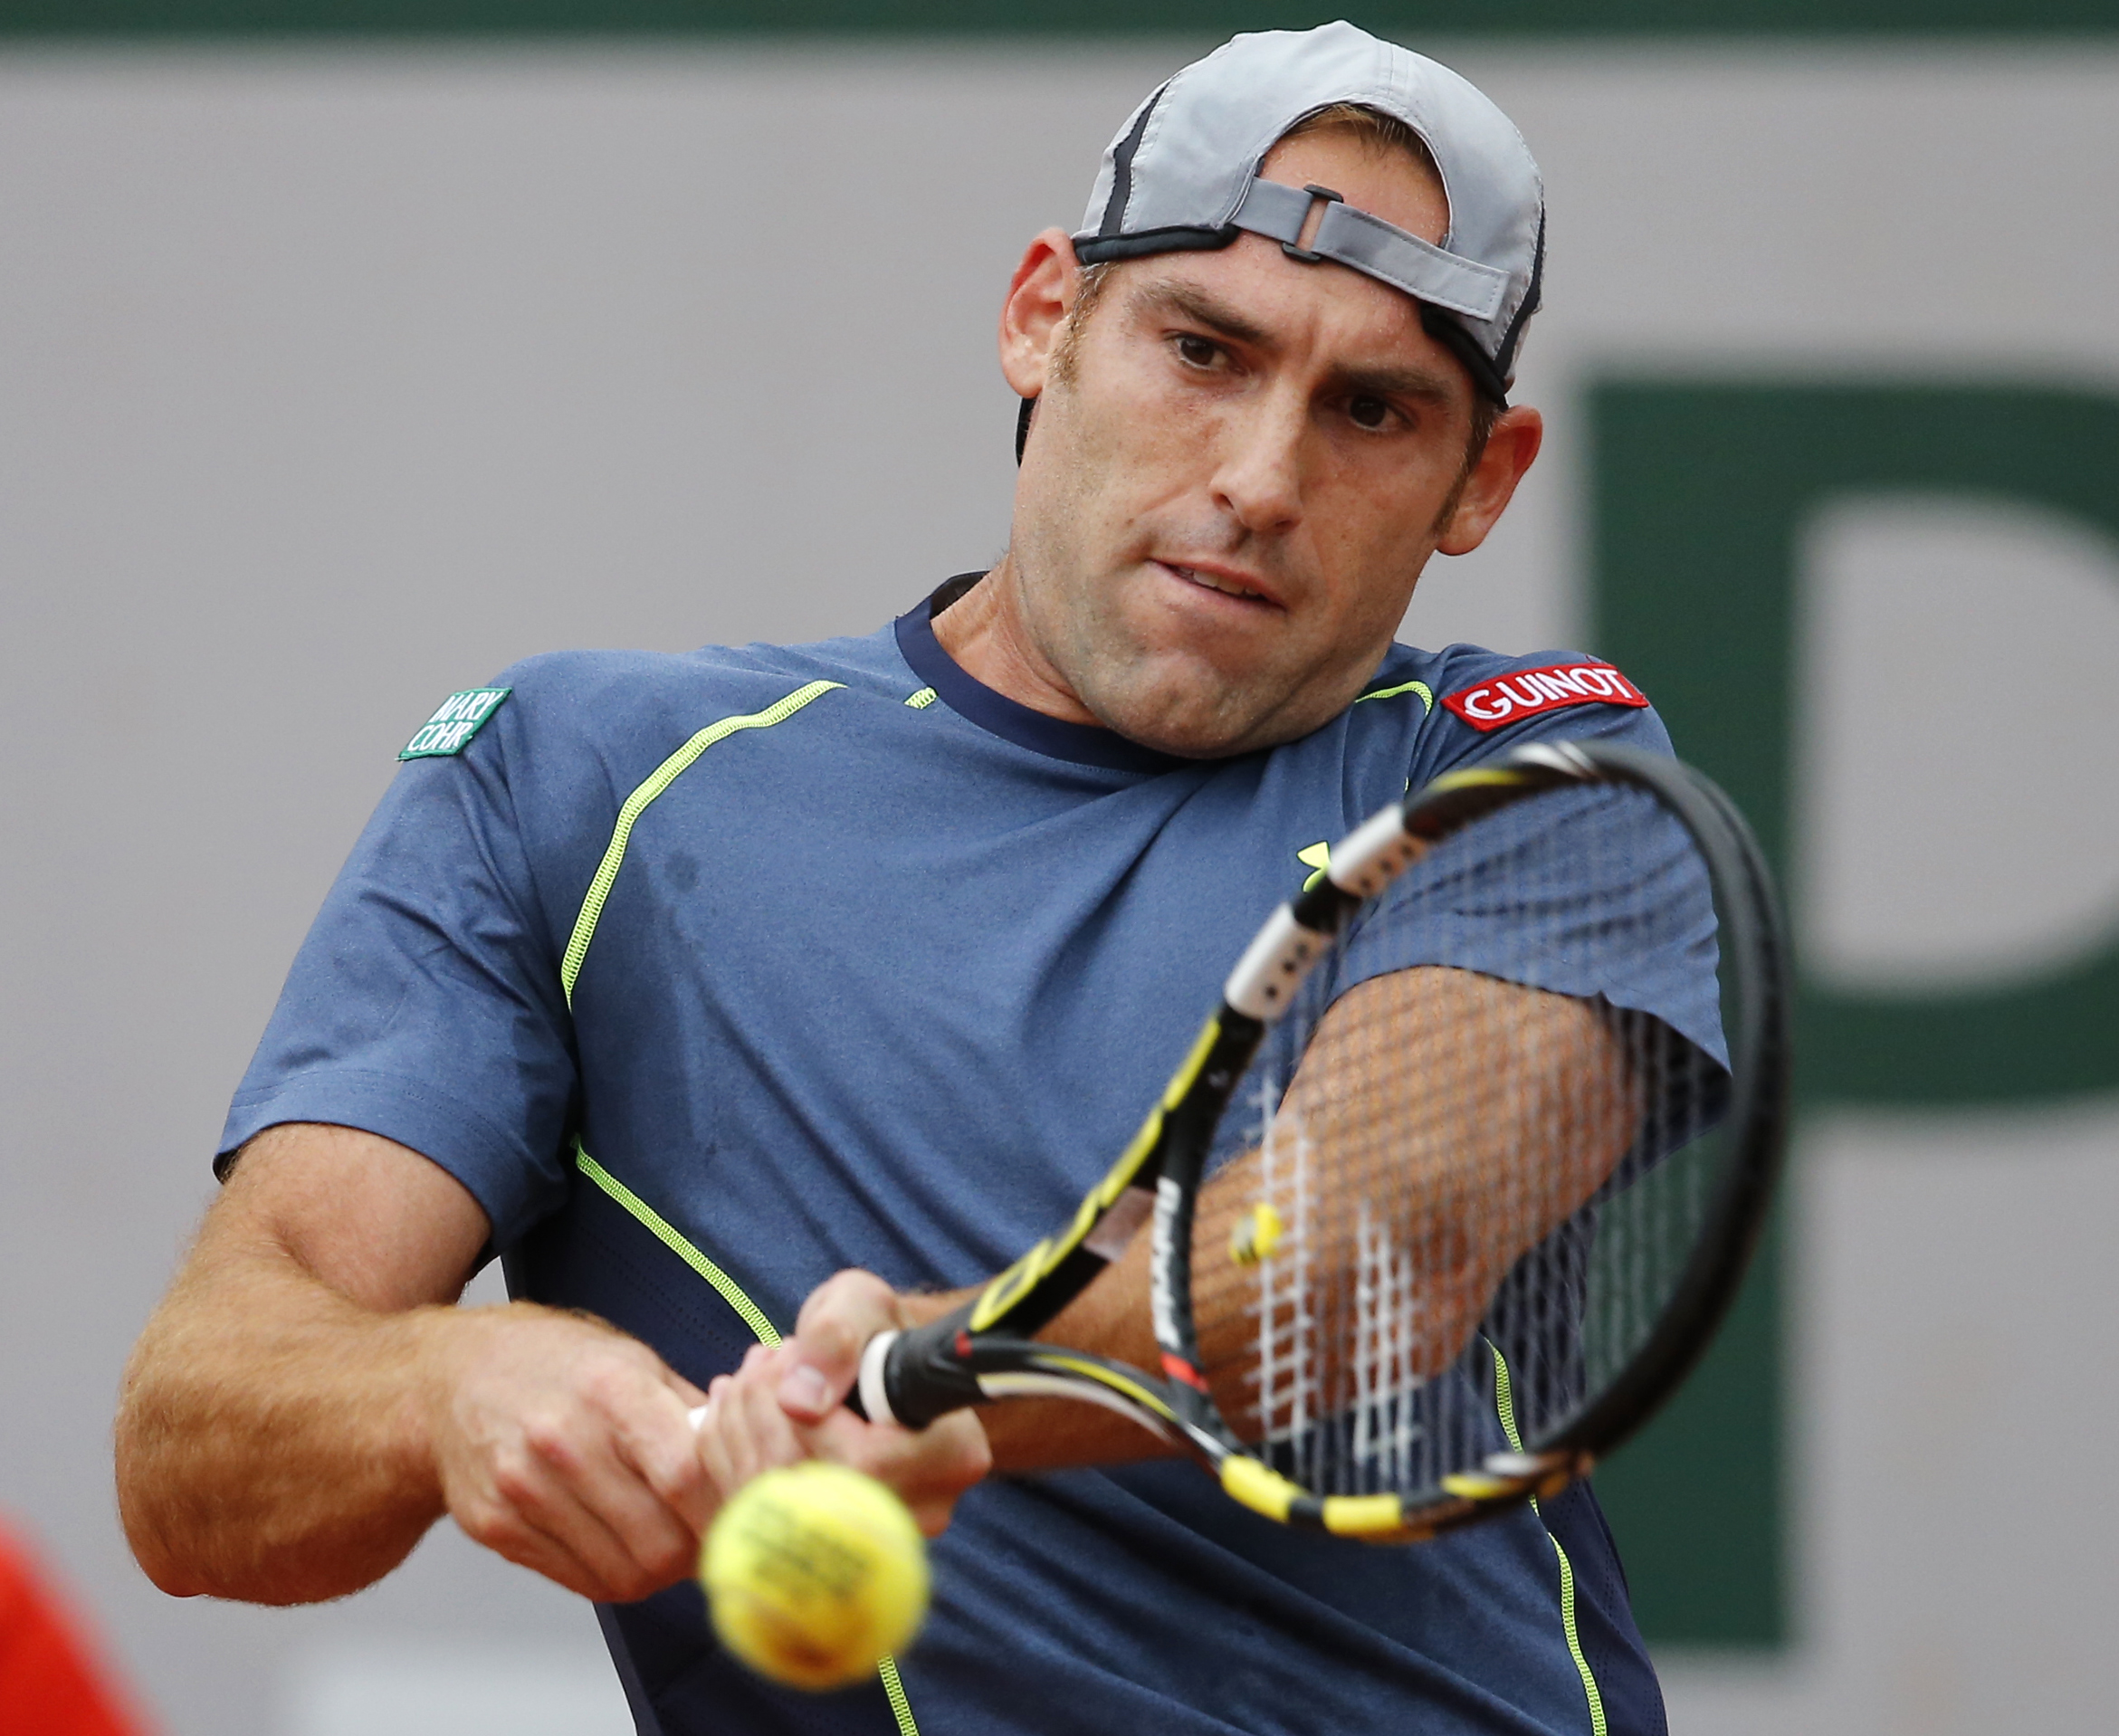 Robby Ginepri of the U.S, returns the ball to Spain's Rafael Nadal during the first round match of  the French Open tennis tournament at the Roland Garros stadium, in Paris, France, Monday, May 26, 2014. (AP Photo/Michel Spingler)